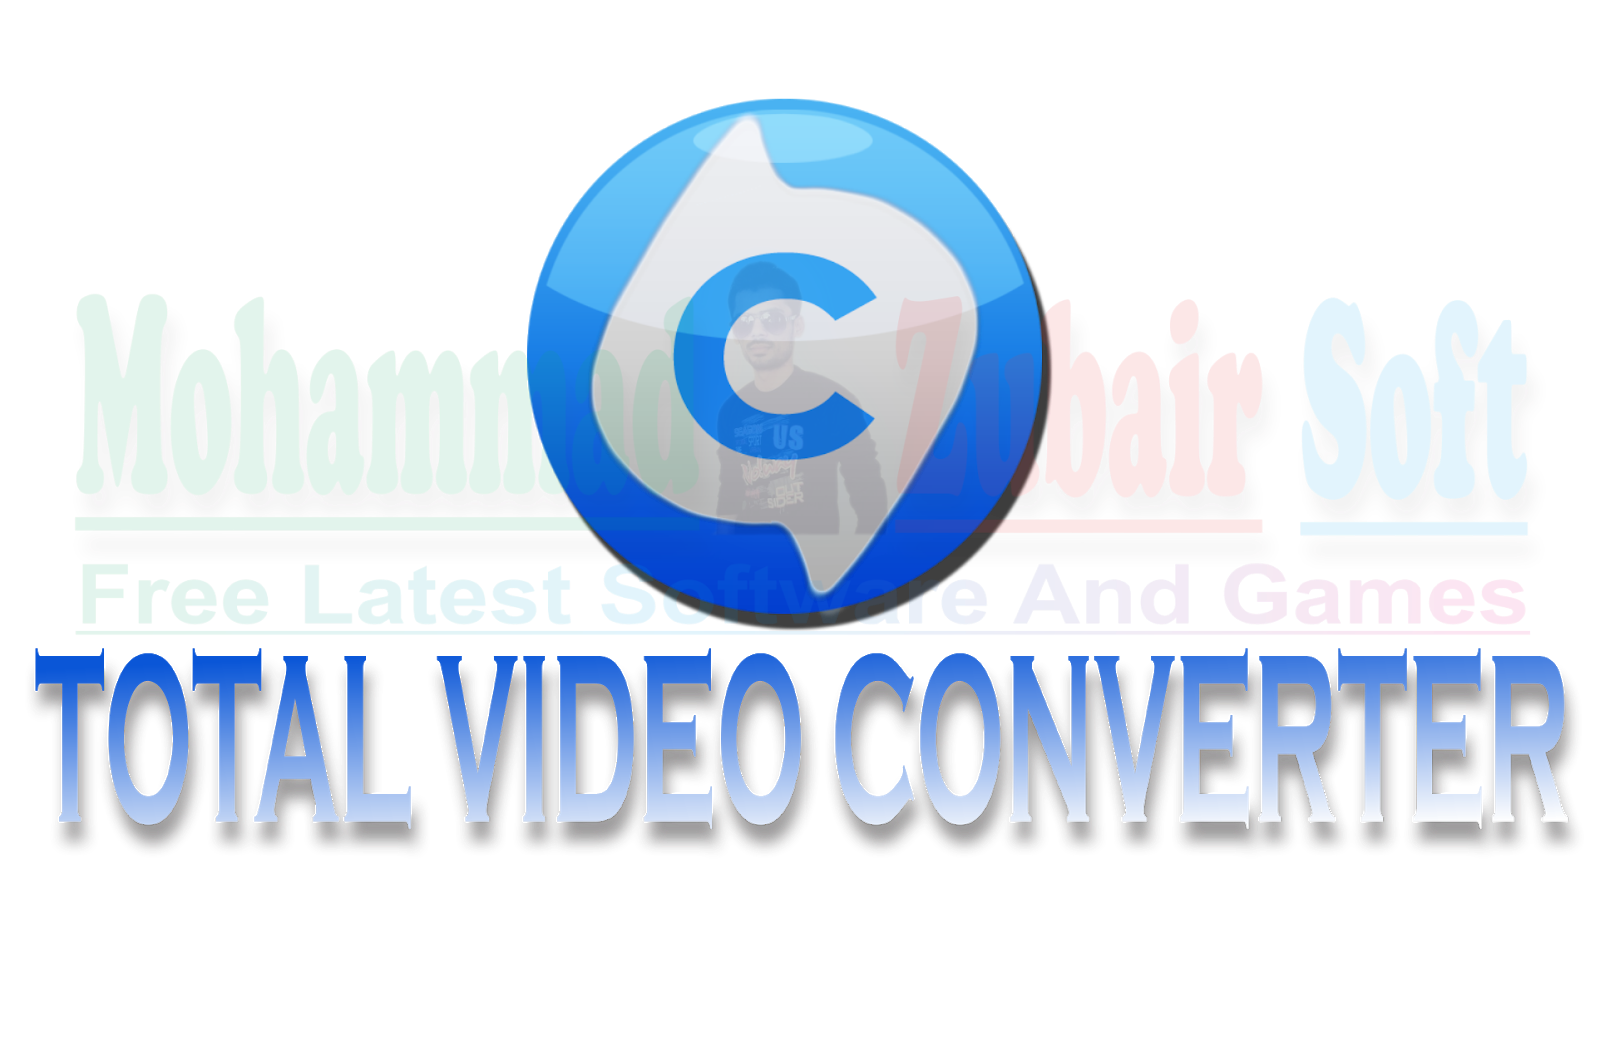 total video converter full version with key free download